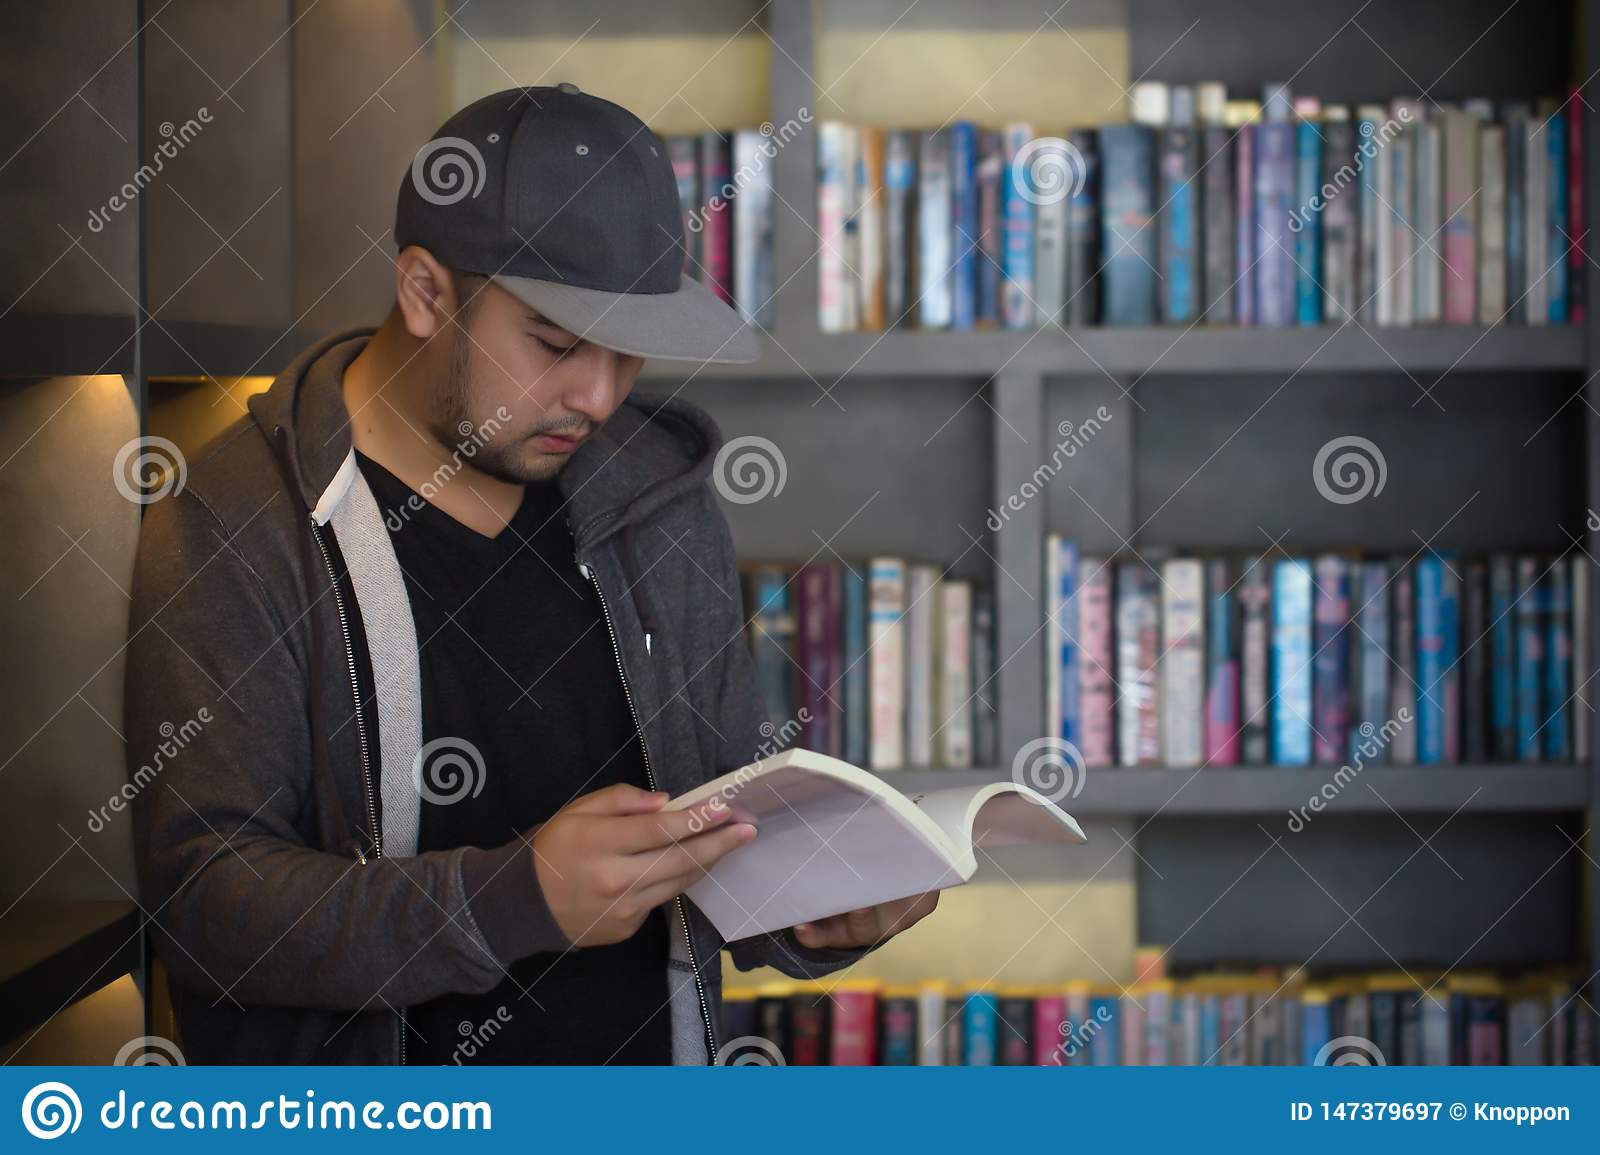 Young man reading book in library. Student in college study from book, knowledge in university concept. Study hard for exam.